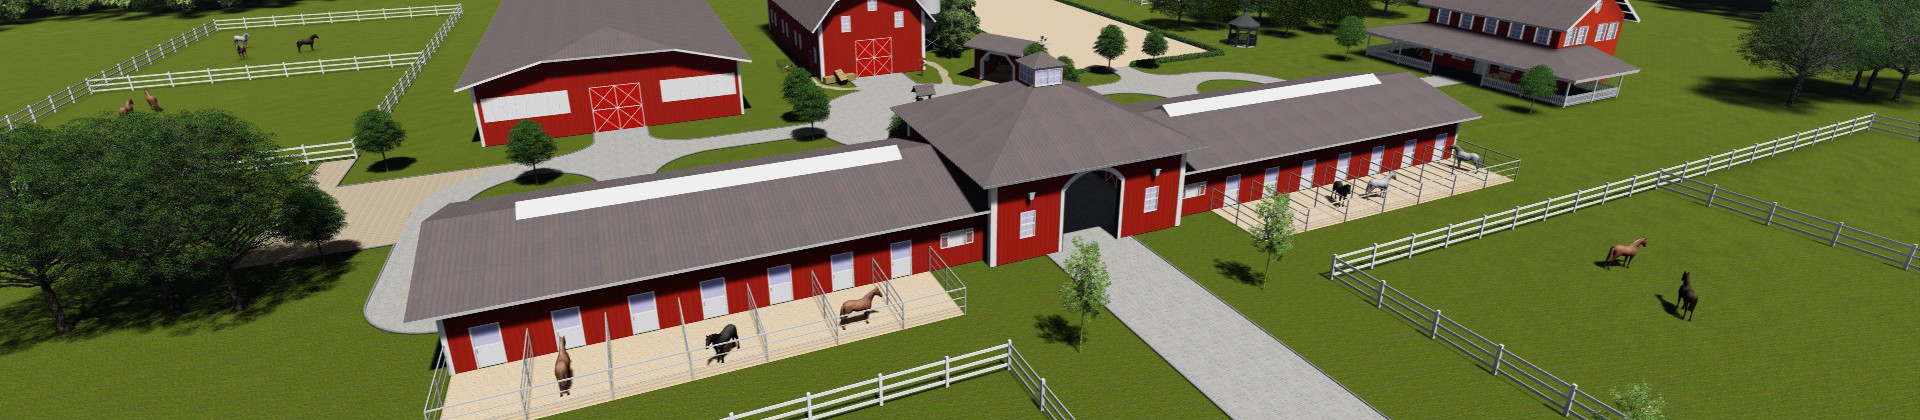 Operating concept for the project of equestrian centre planning